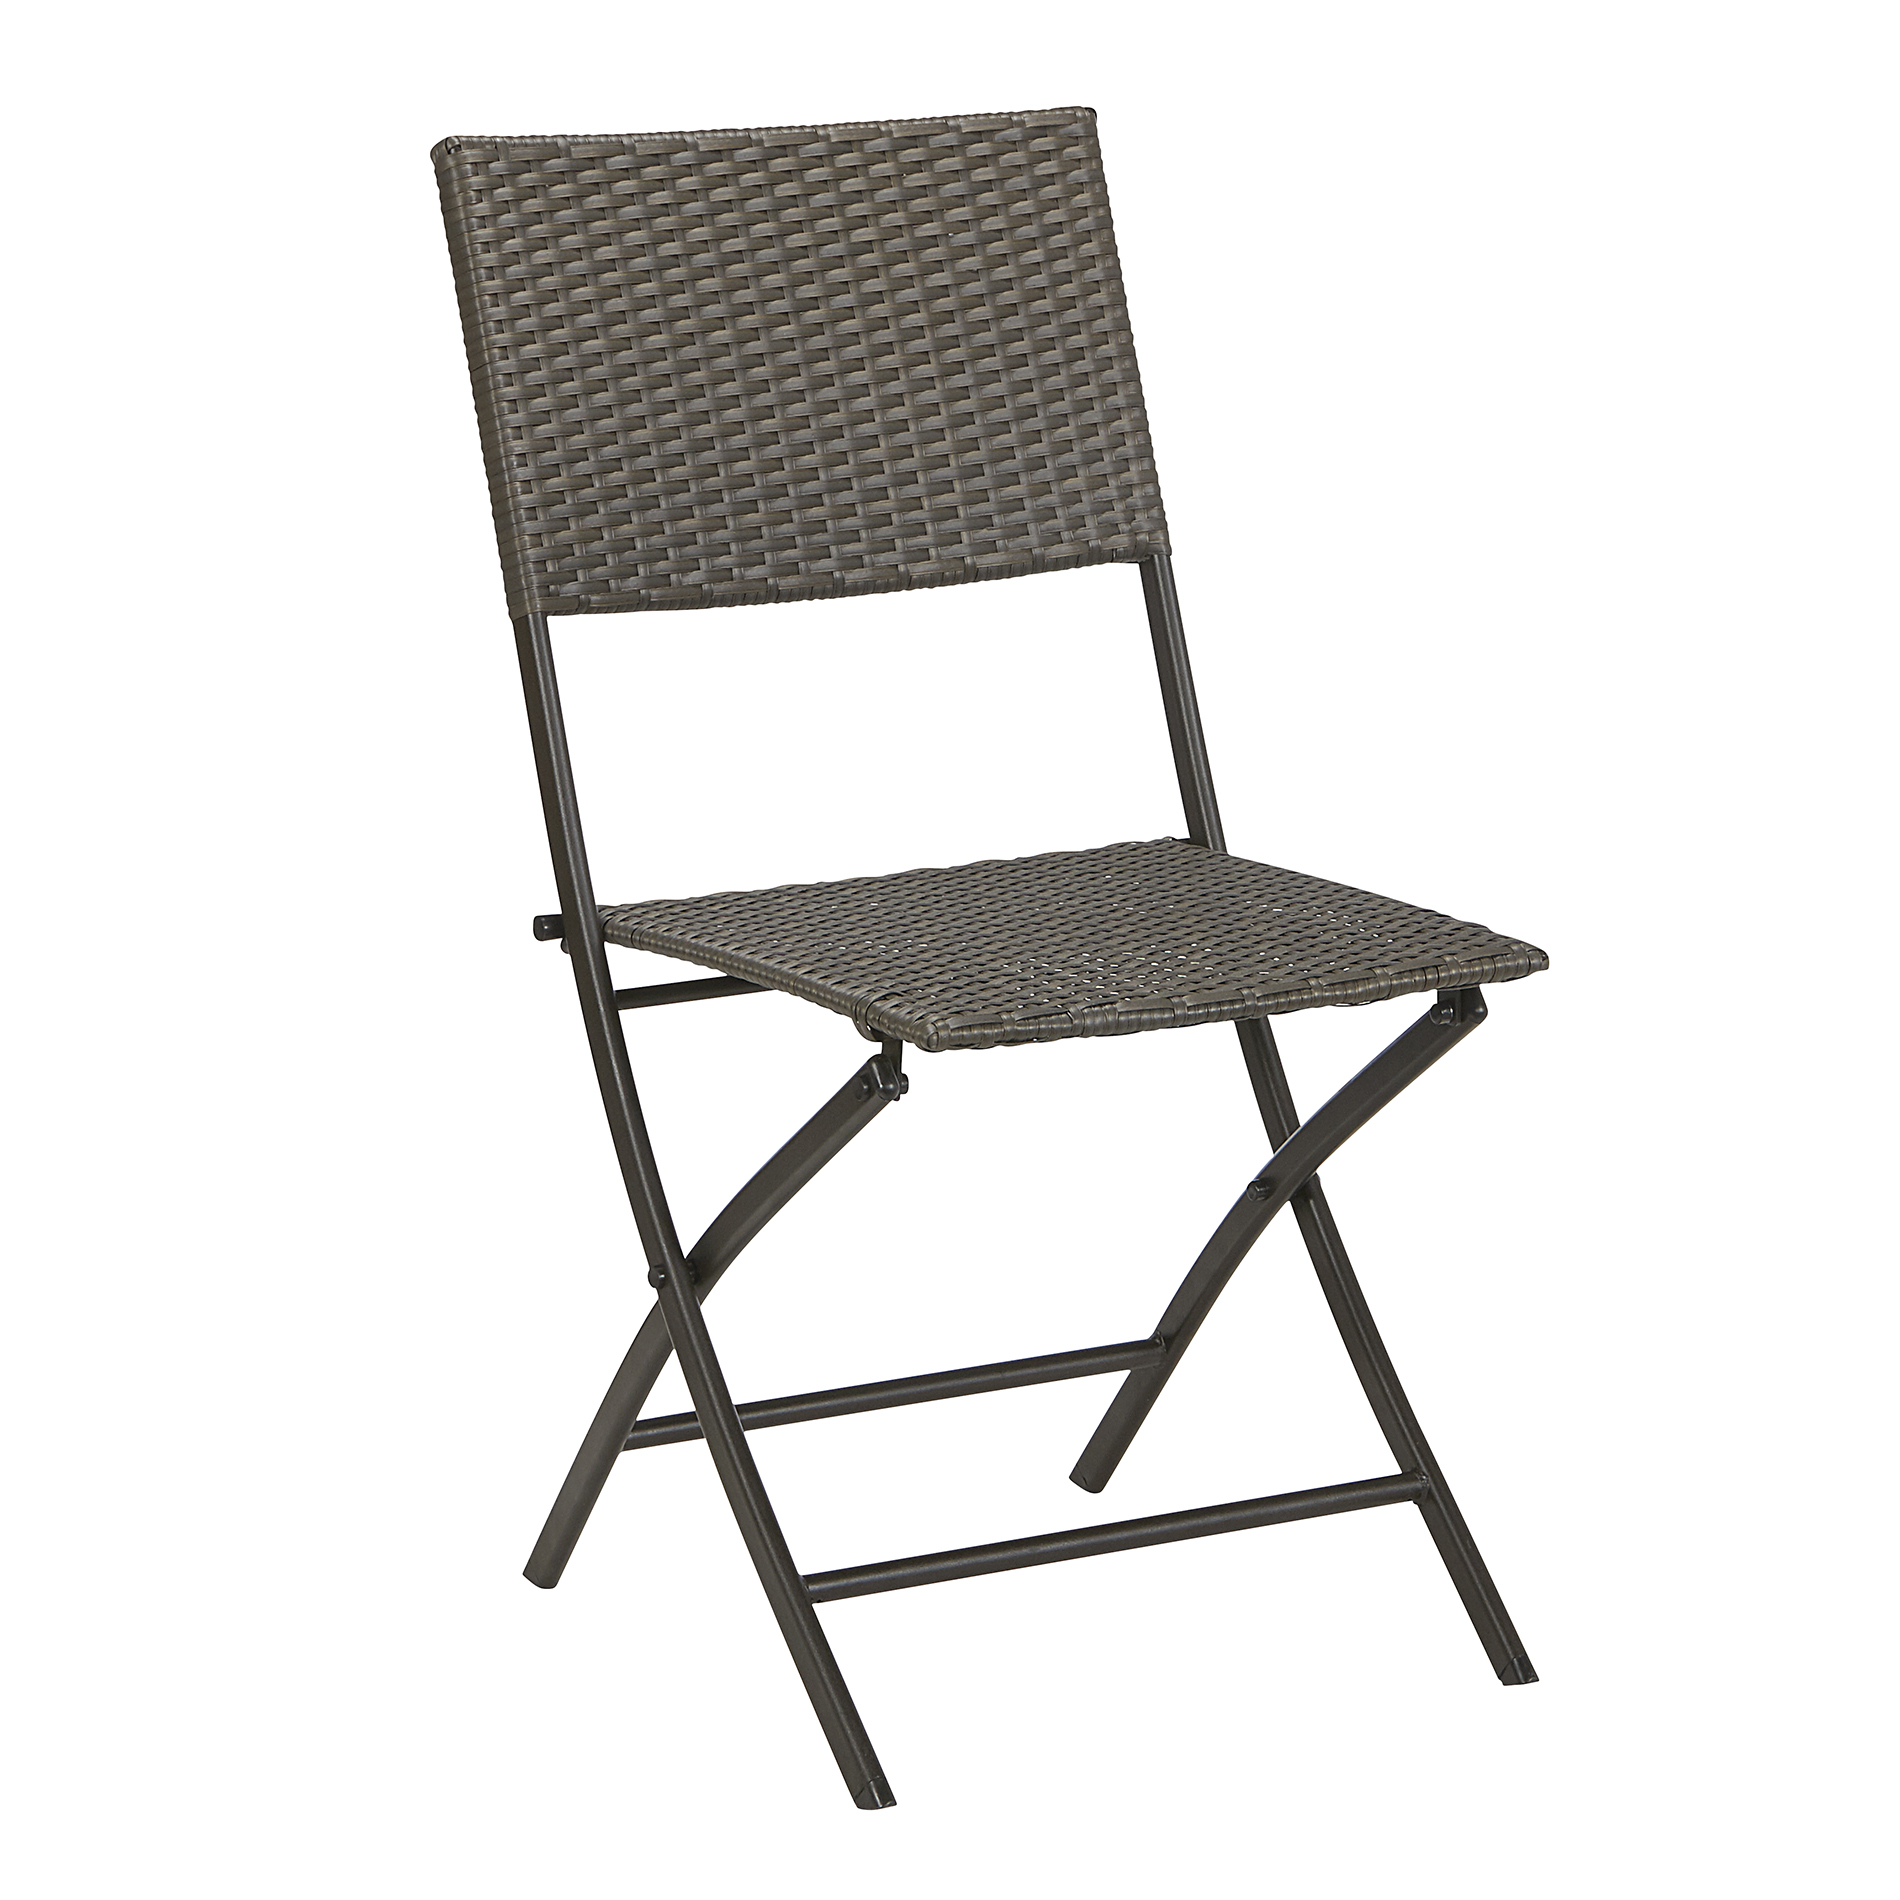 folding wicker chairs louis side chair jaclyn smith resin arm less